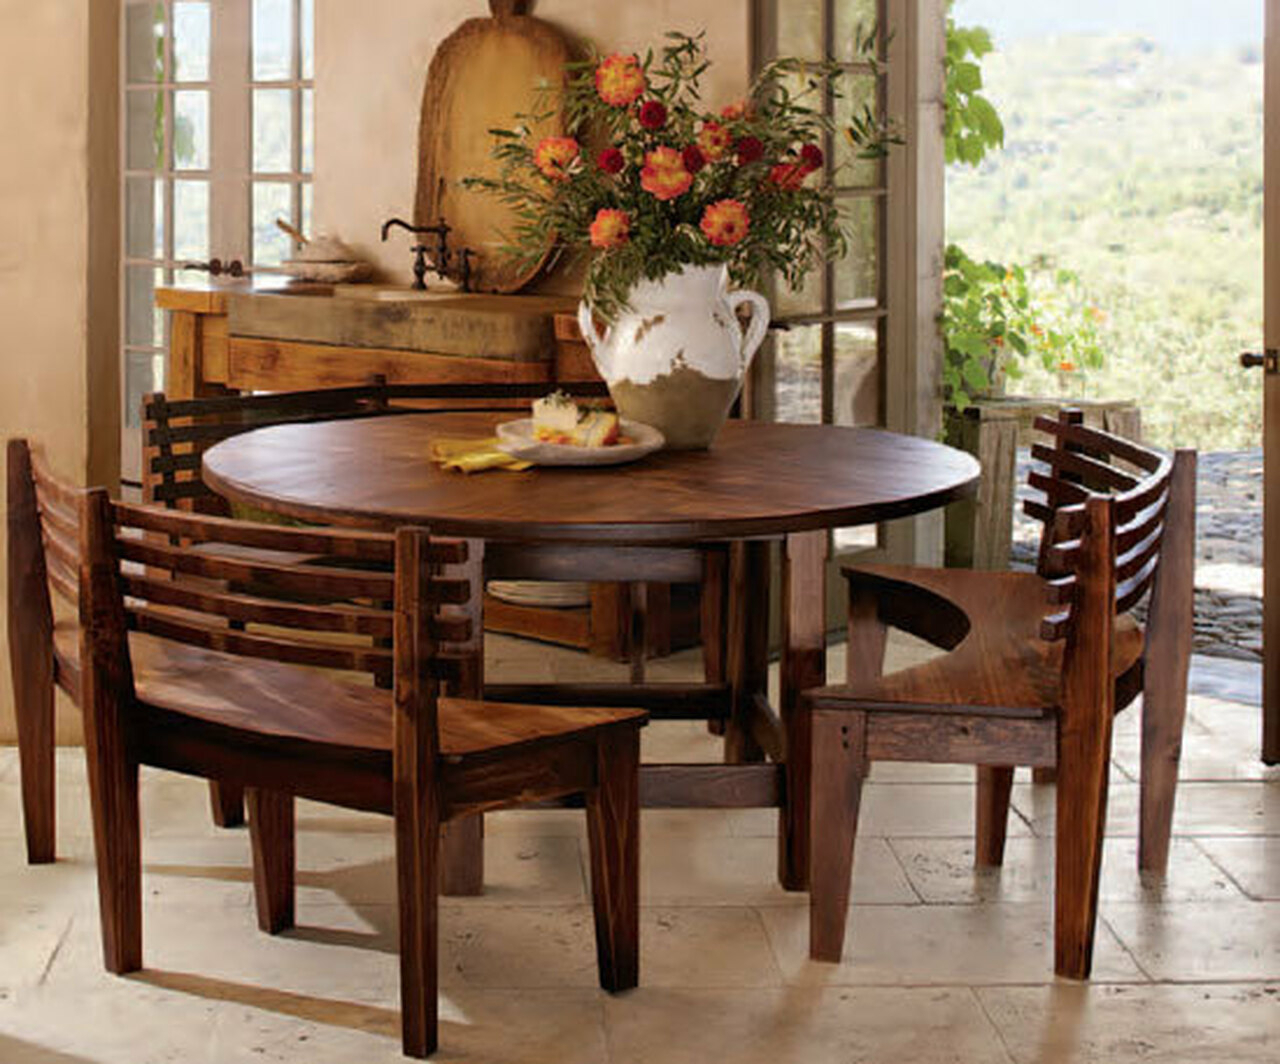 small round dining table for 2